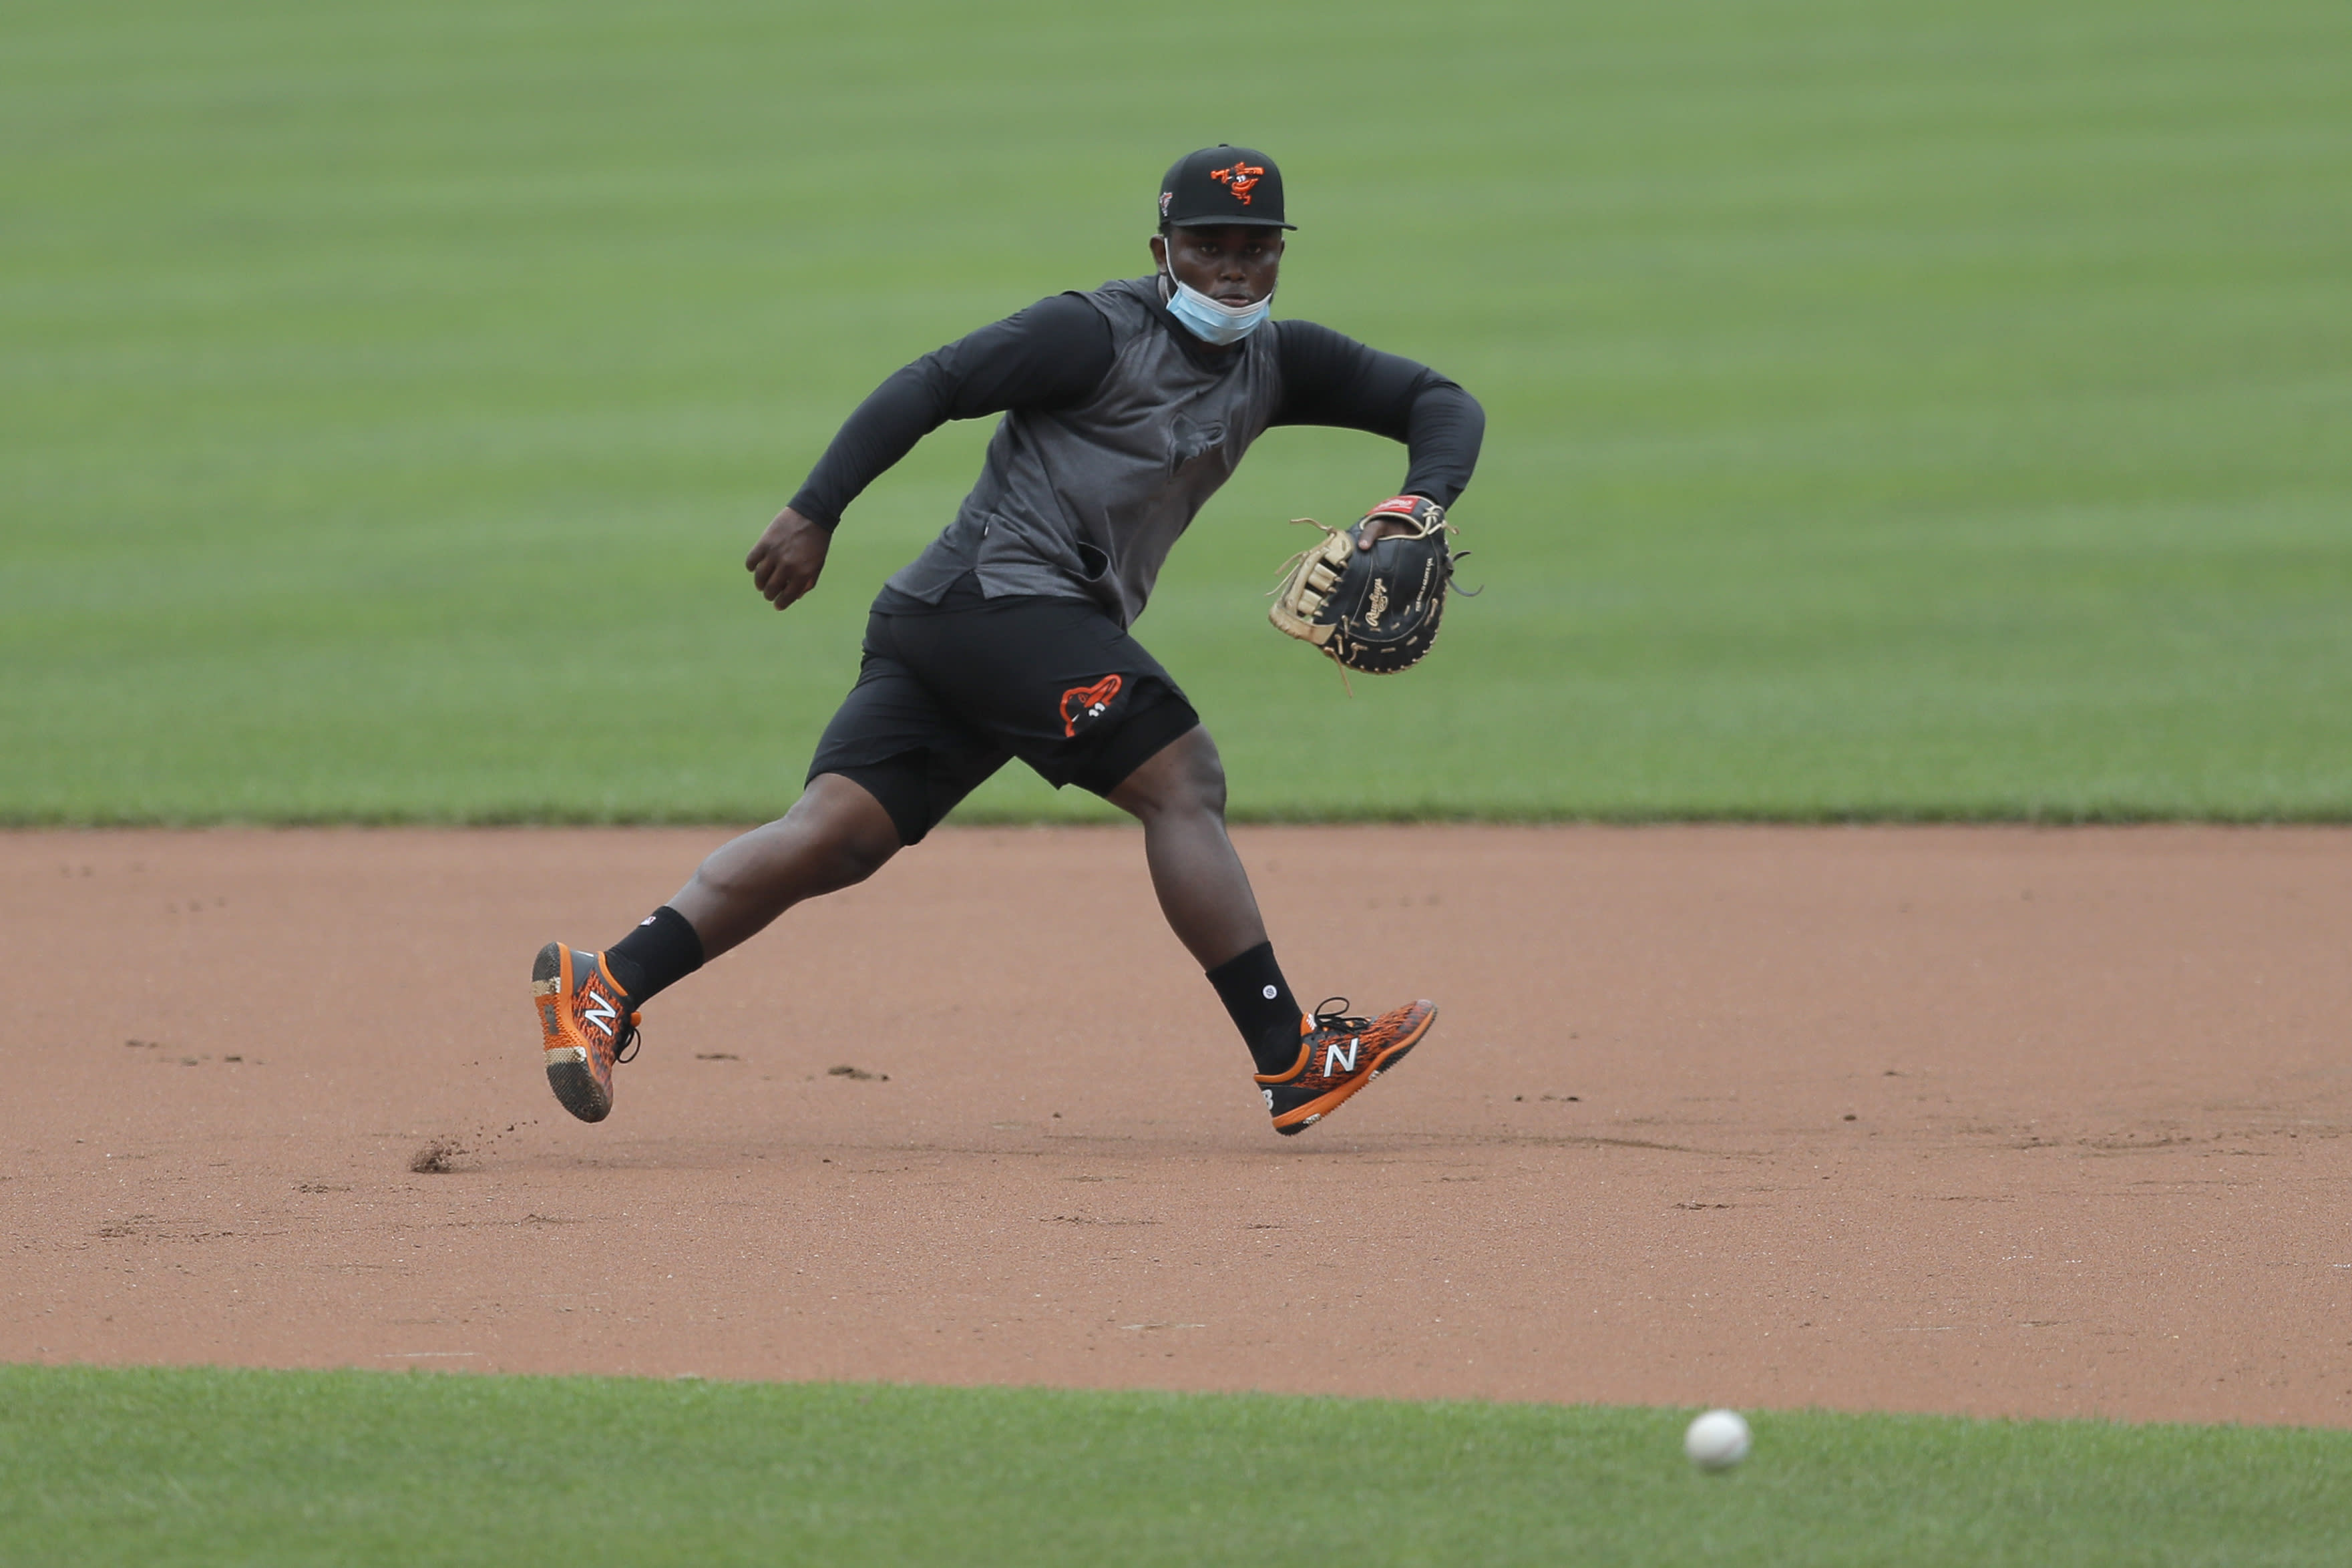 Baltimore Orioles infielder Dilson Herrera fields a ground ball during baseball training camp, Tuesday, July 7, 2020, in Baltimore. (AP Photo/Julio Cortez)